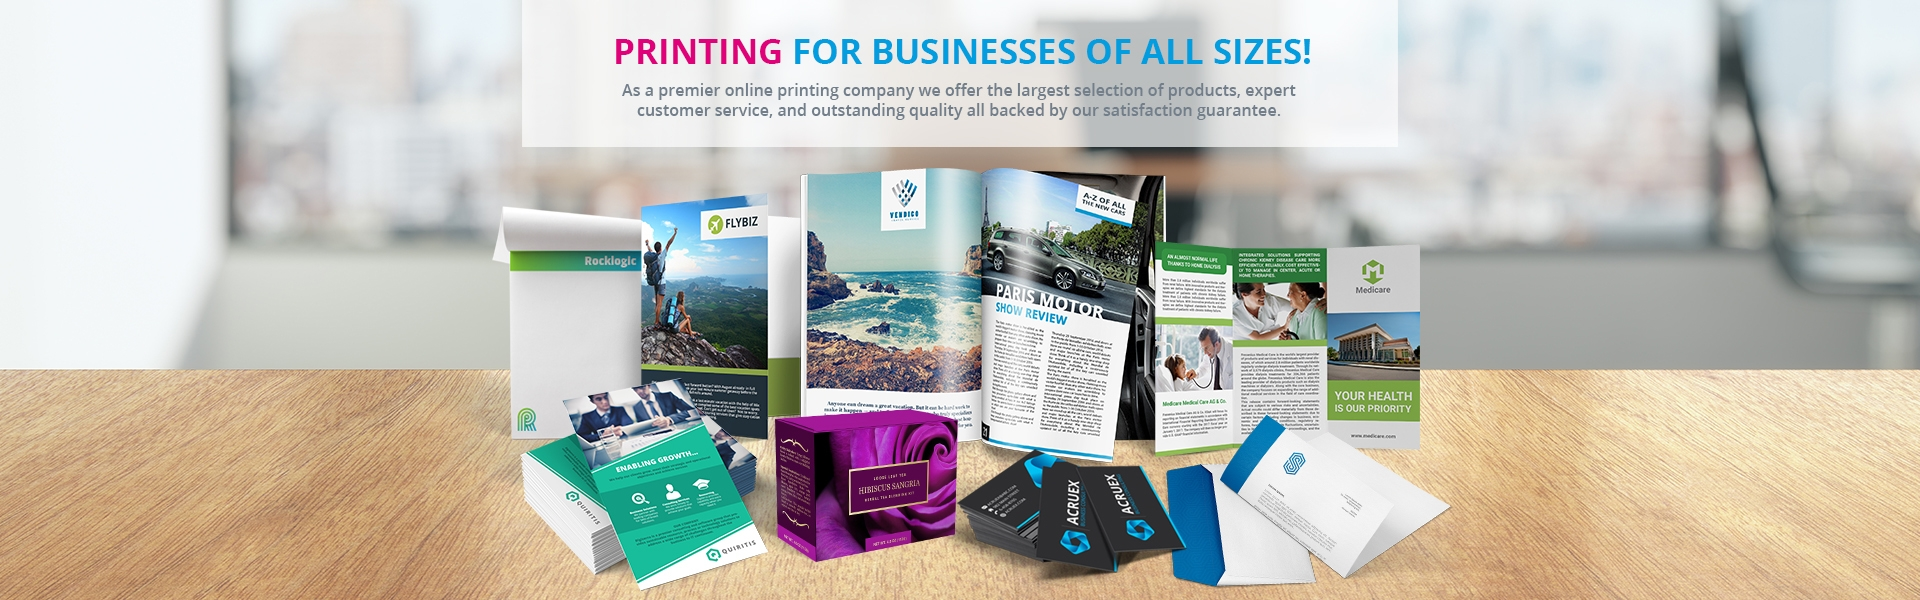 Printing for business of all sizes